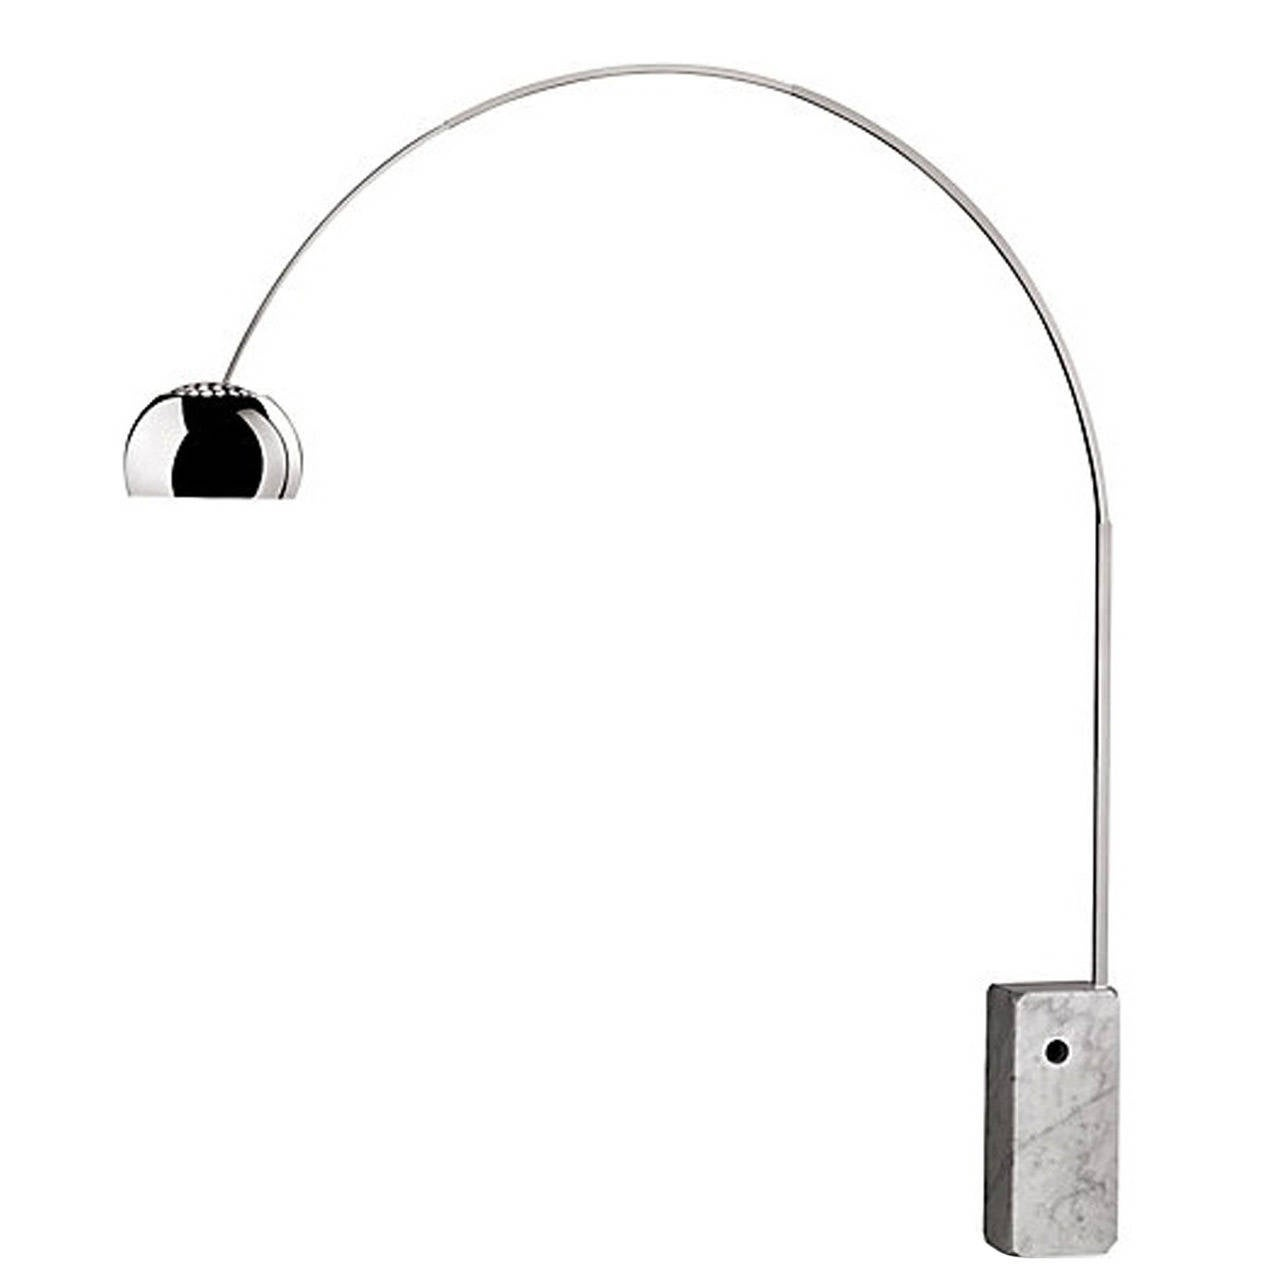 Arco Floor Lamp by Castiglioni for Flos Italy at 1stdibs